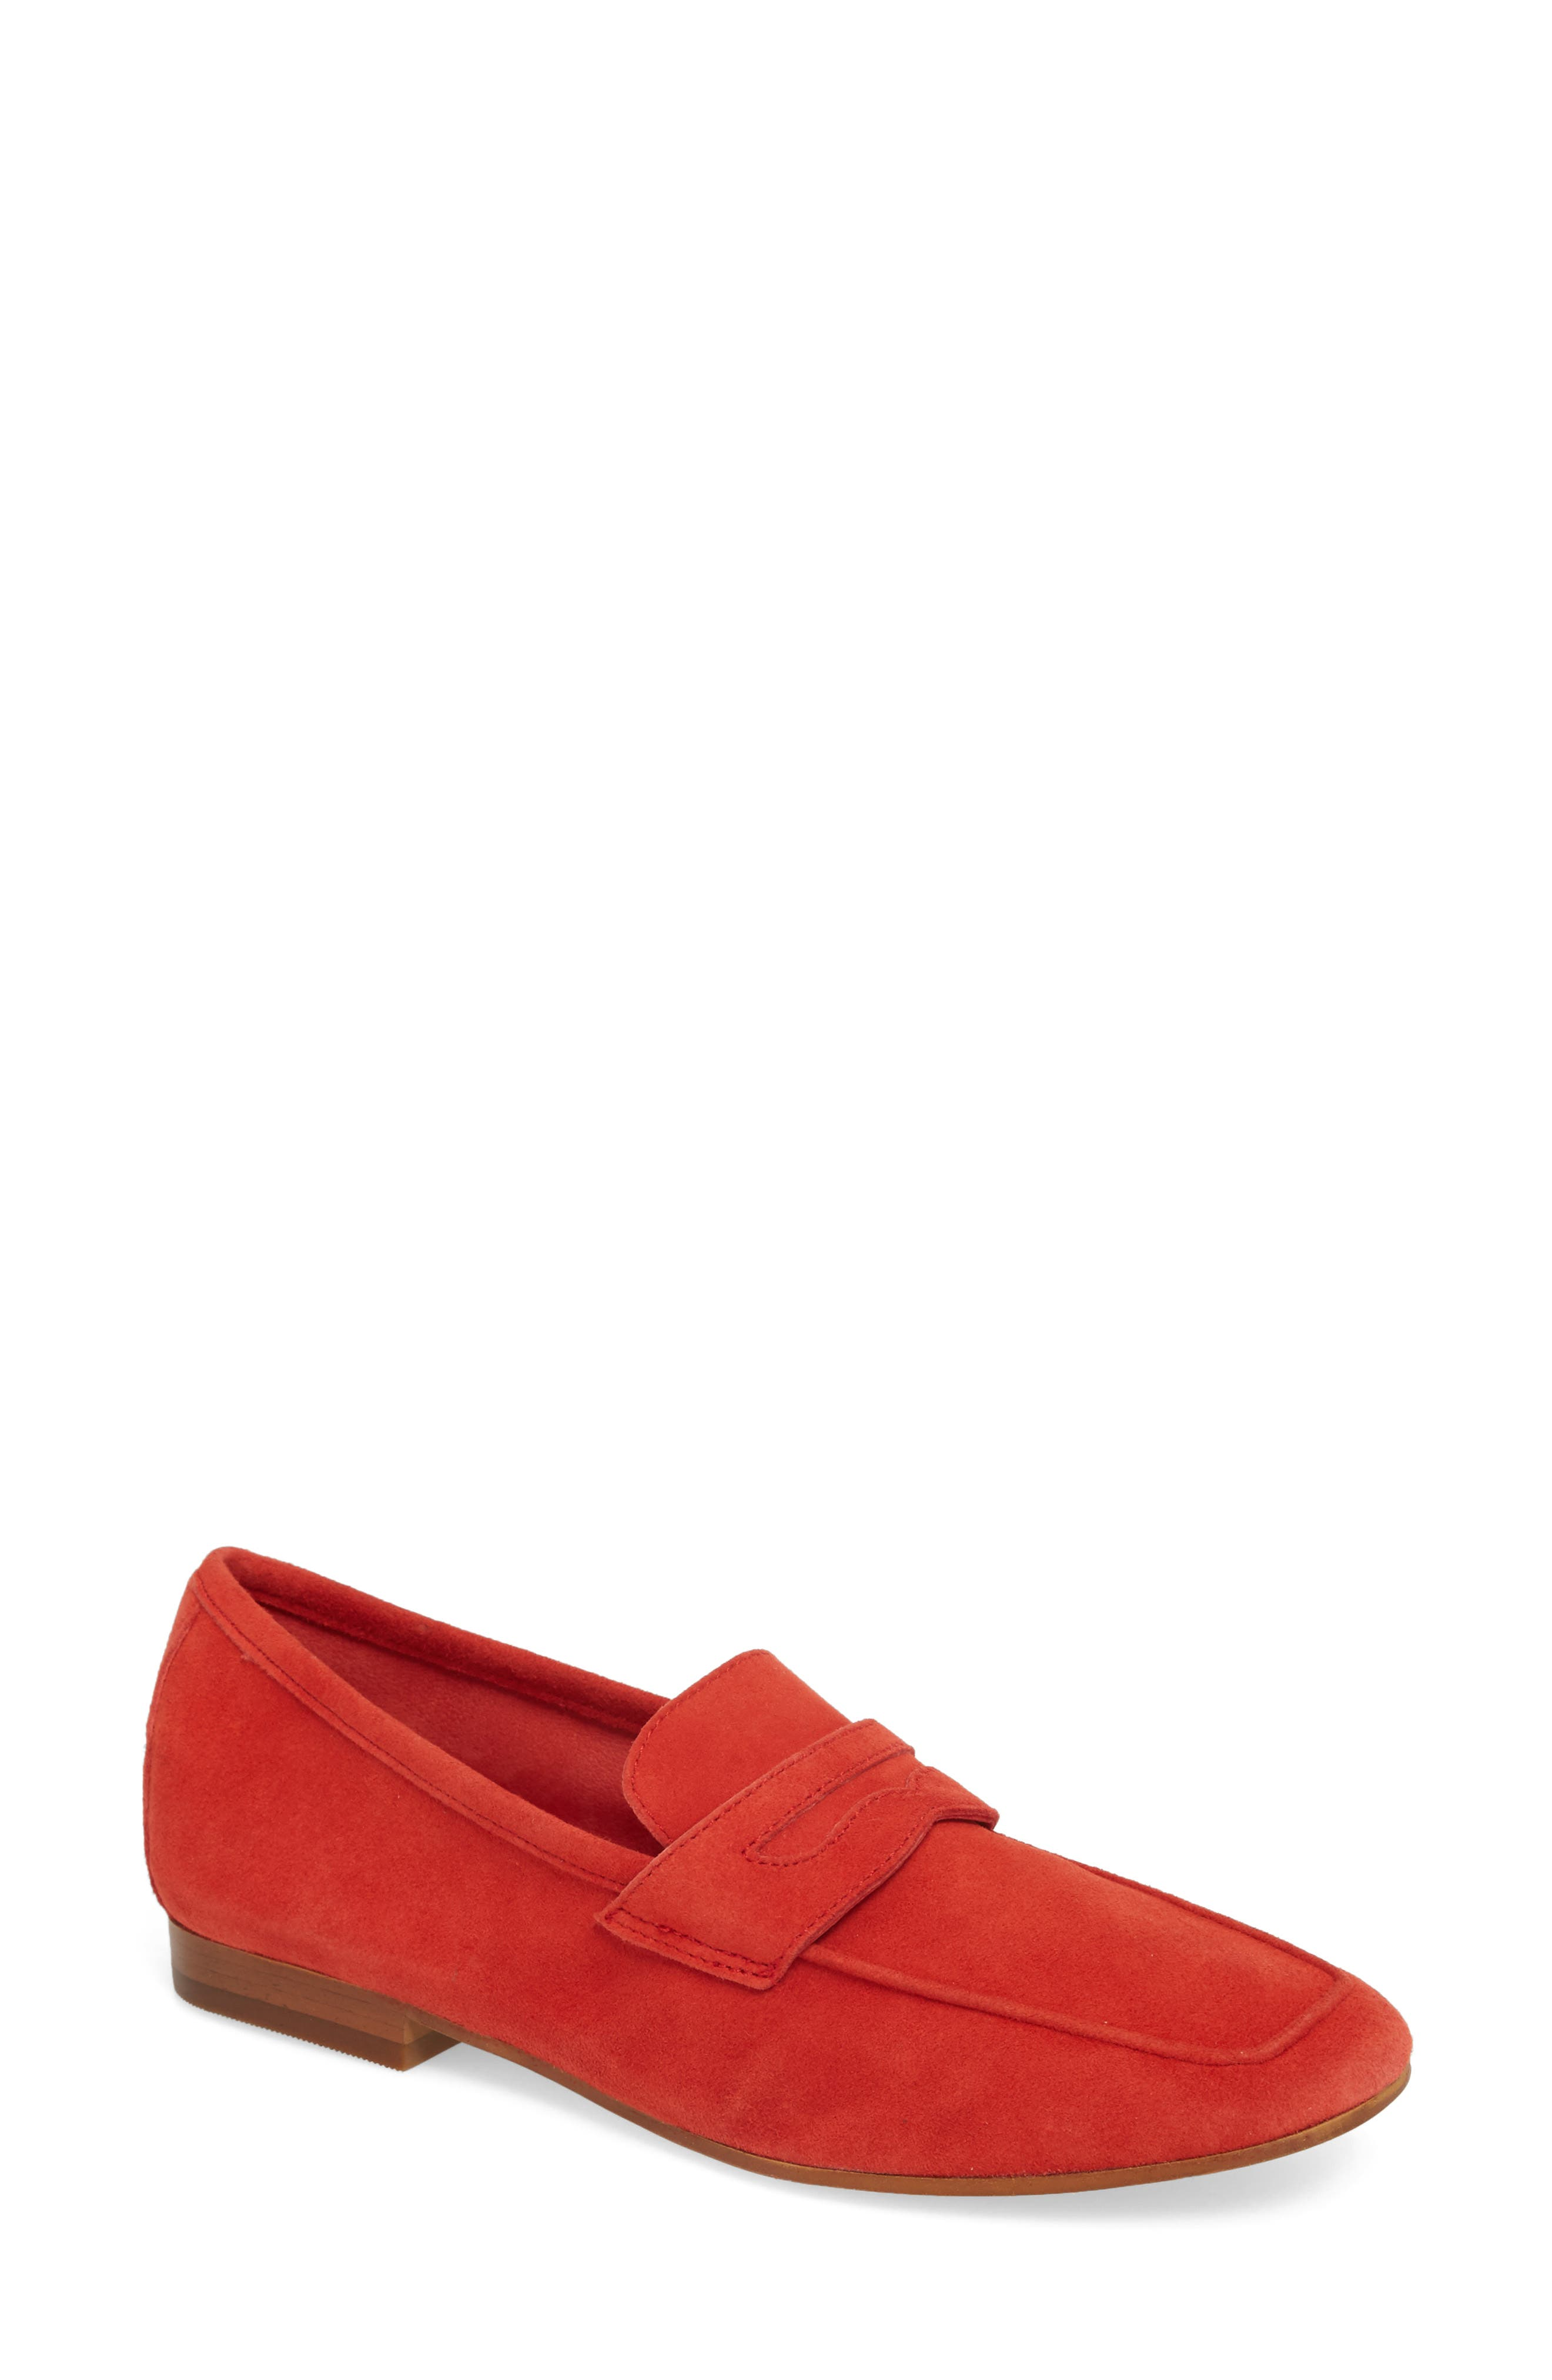 Dean Apron Toe Penny Loafer,                             Main thumbnail 1, color,                             Red Suede